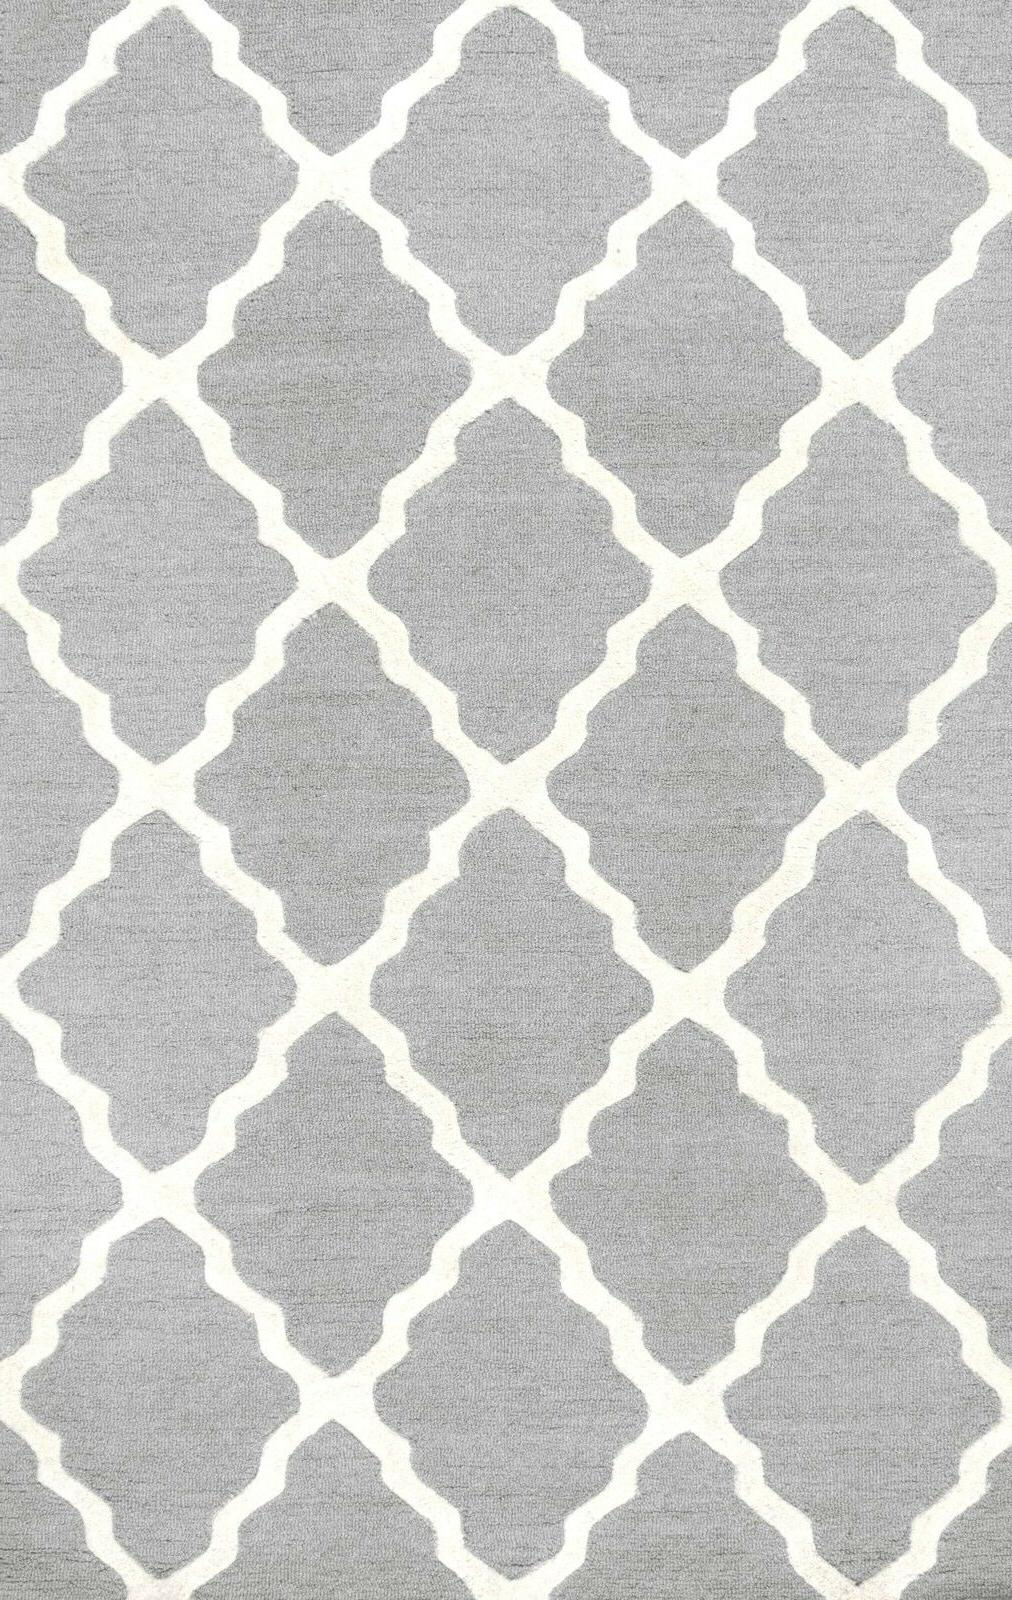 nuLOOM Hand Made Geometric Rug in Grey and White